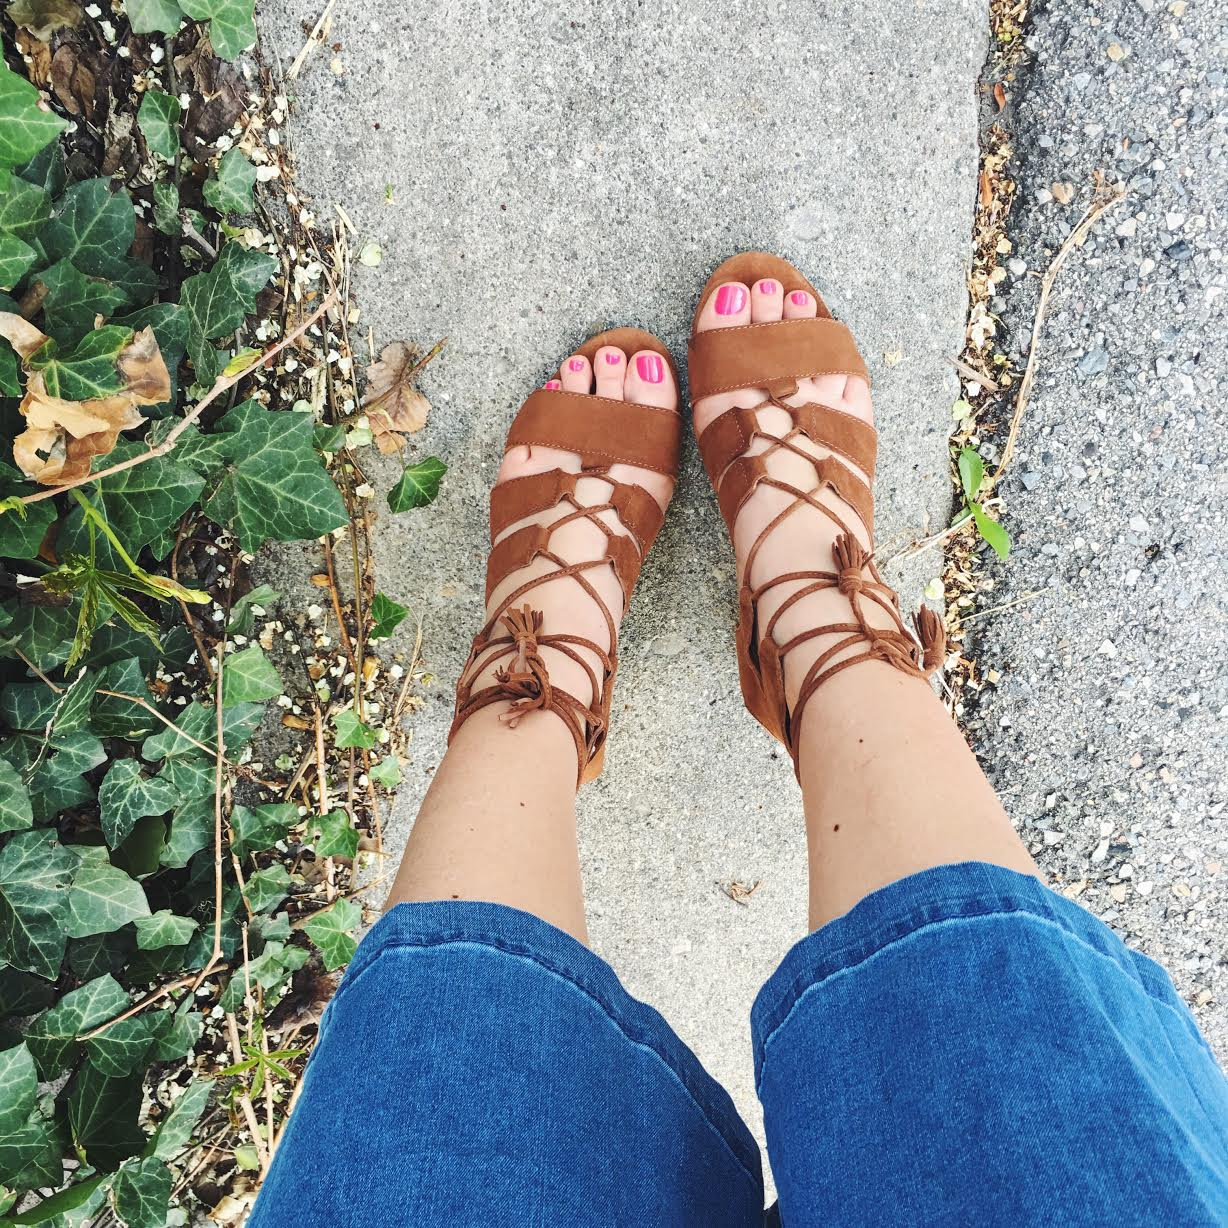 Lace Up Sandals, If the Shoe Fits, Long Tall Sally